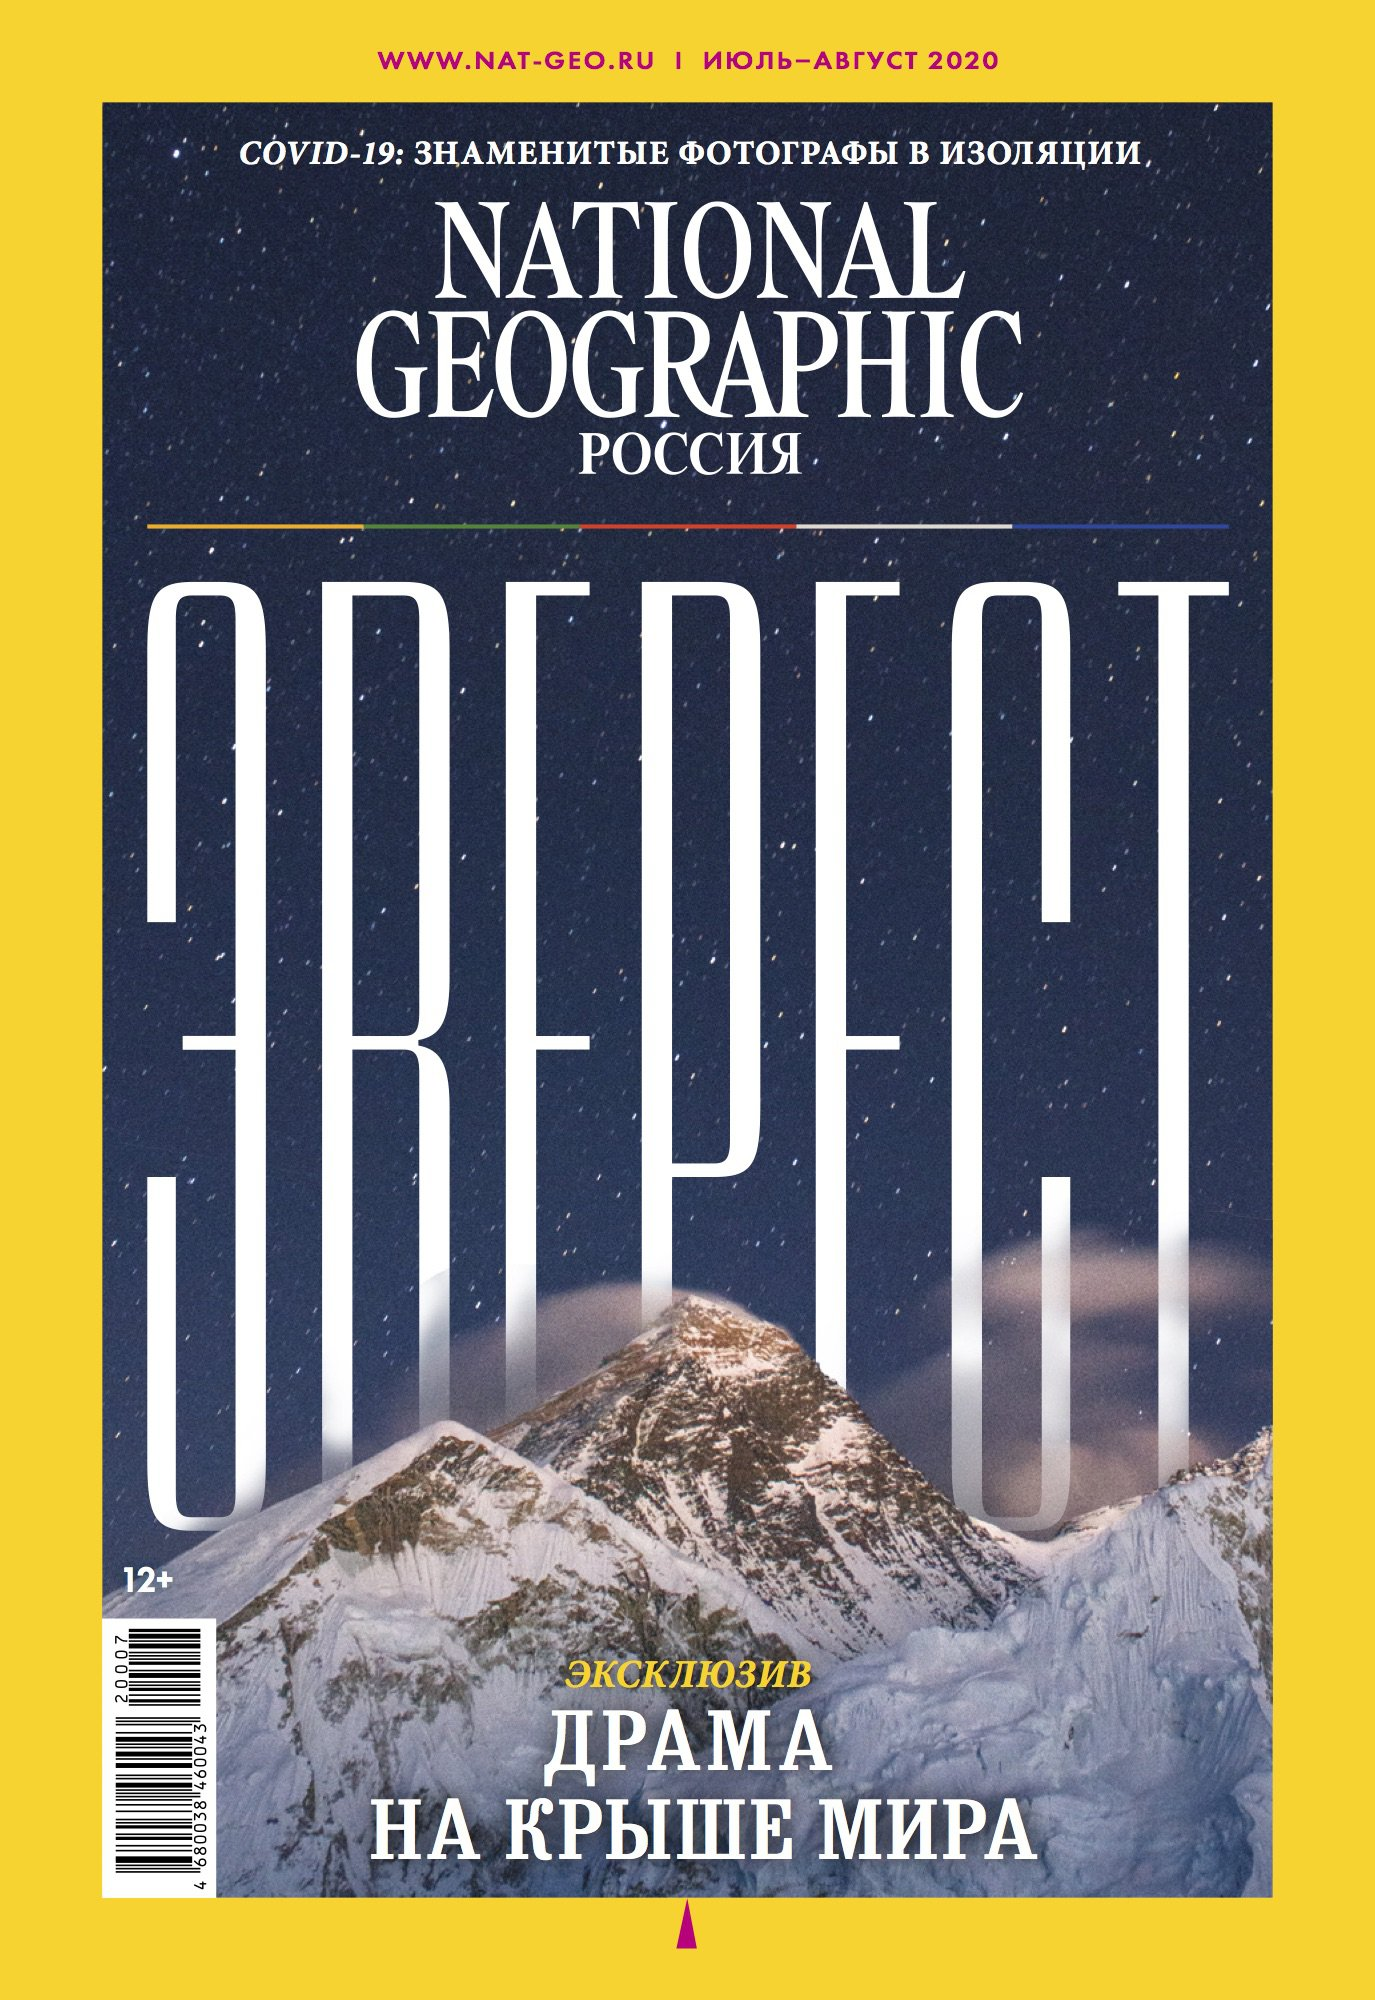 National Geographic №201, июль–август 2020